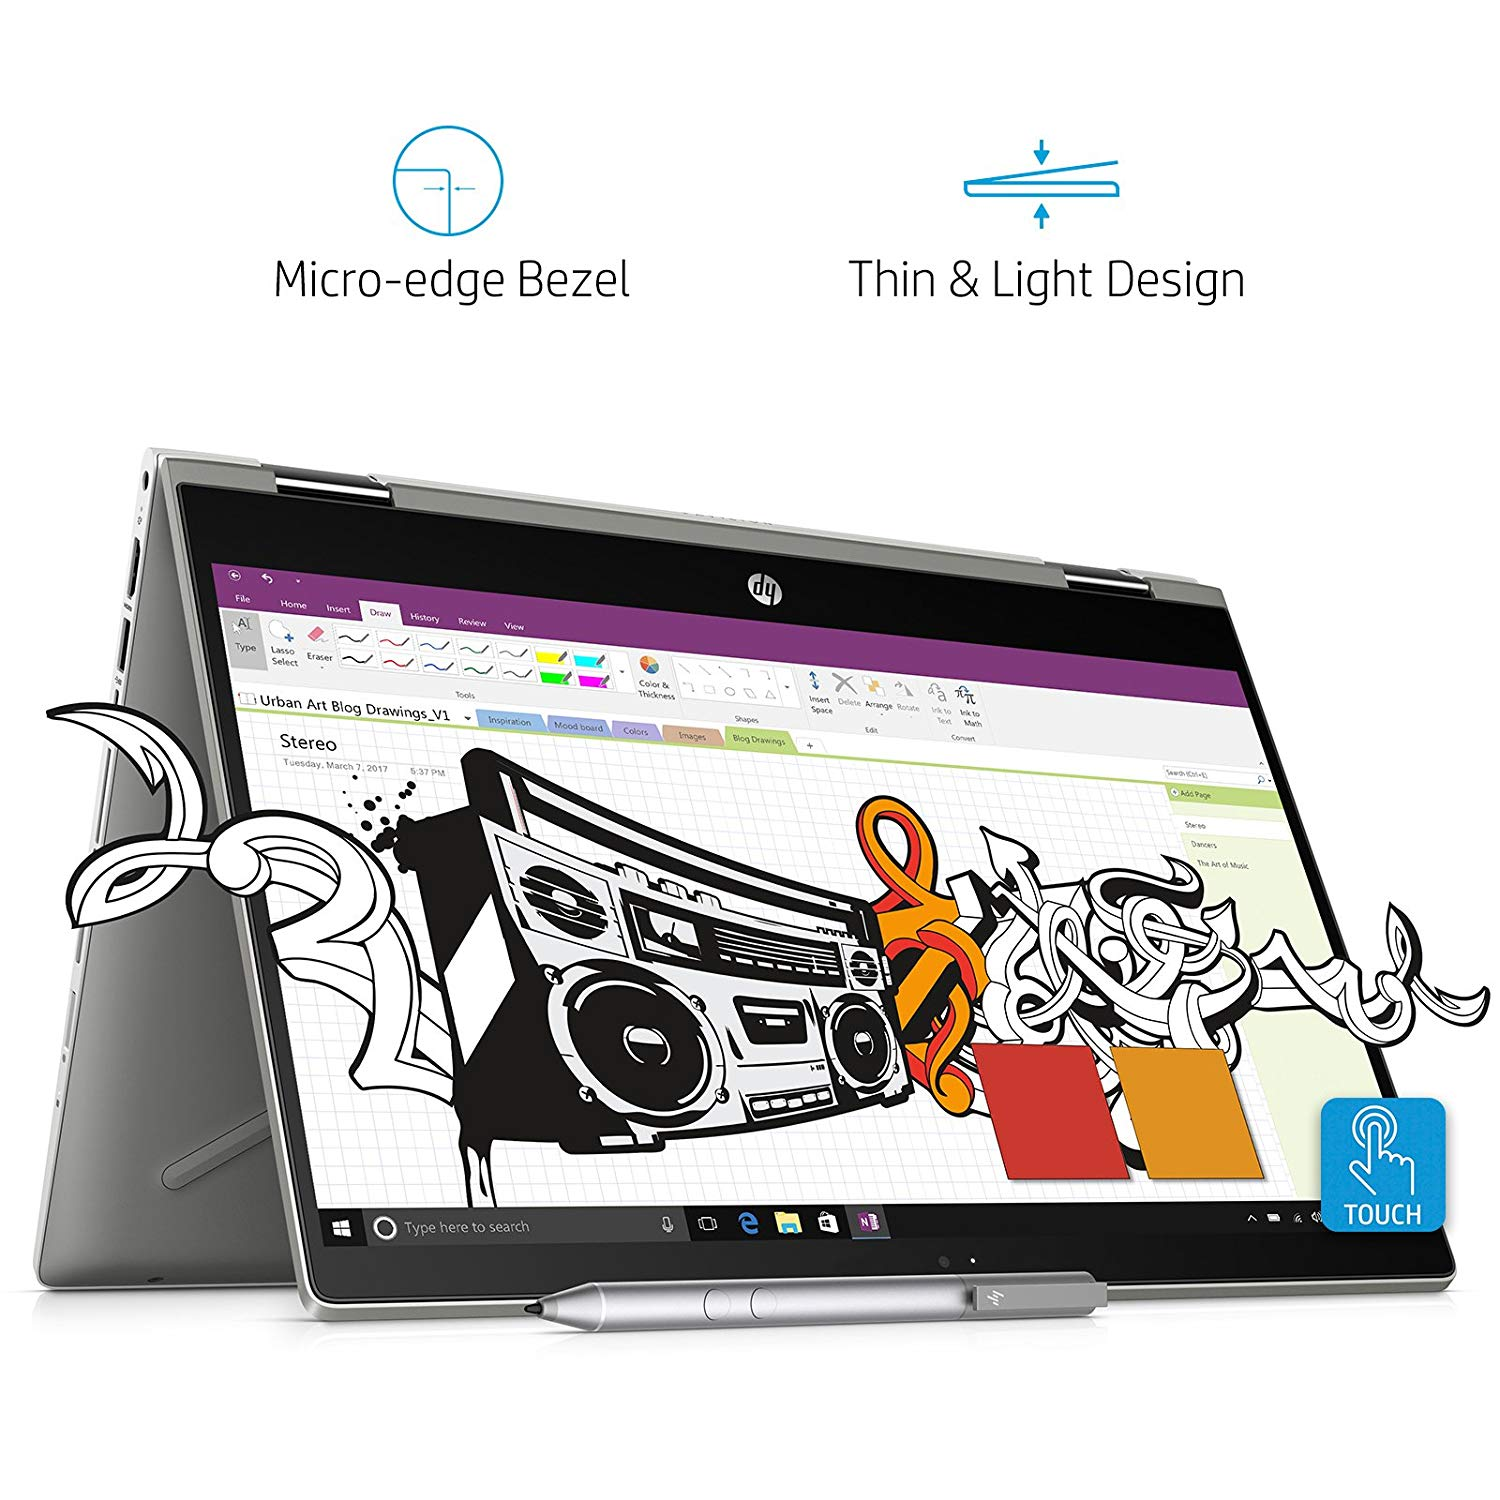 HP Pavilion x360 14-cd0050TX Convertible(8th Gen i3-8130U/4GB DDR4/1TB+8GB SSHD/NVIDIA 2GB Graphics/Win 10/FP Reader/MS Office H&S 2016) Natural Silver